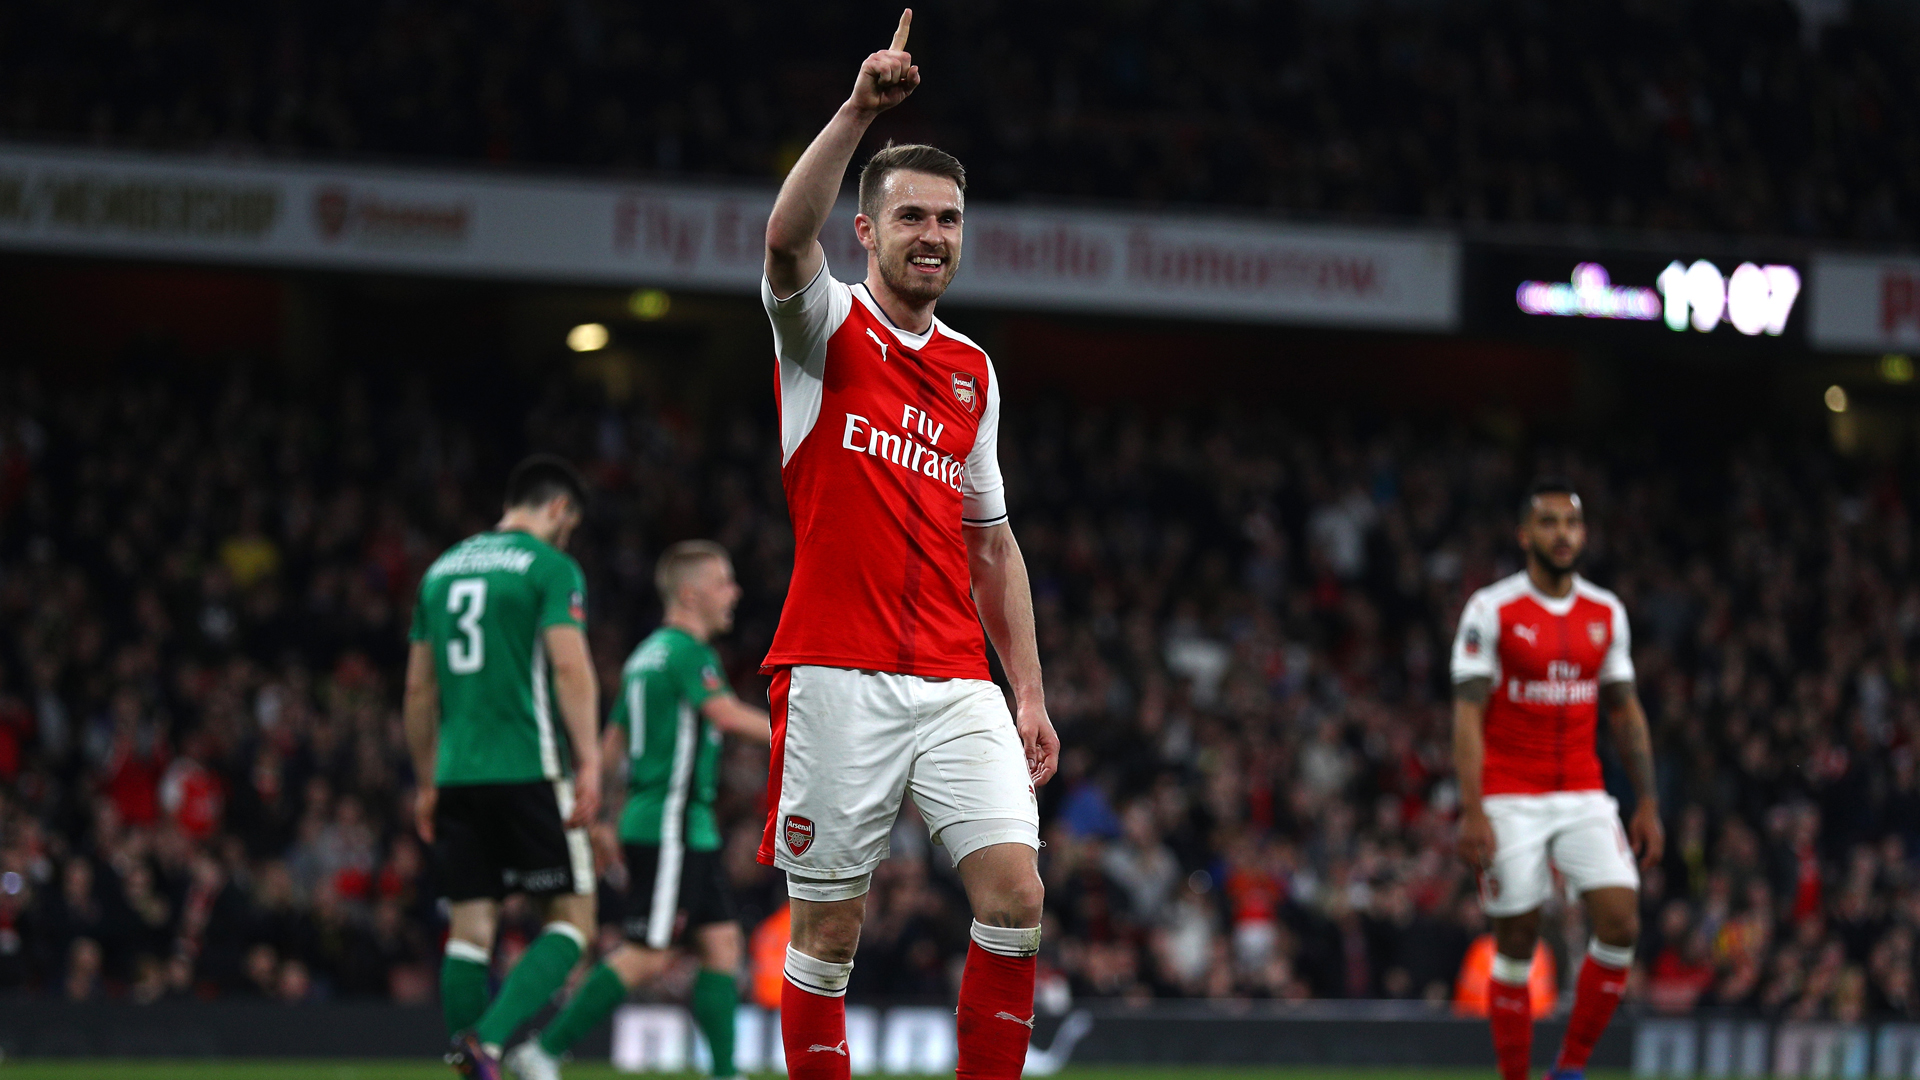 'He is a Frank Lampard type' - Wenger compares Ramsey to former Chelsea star